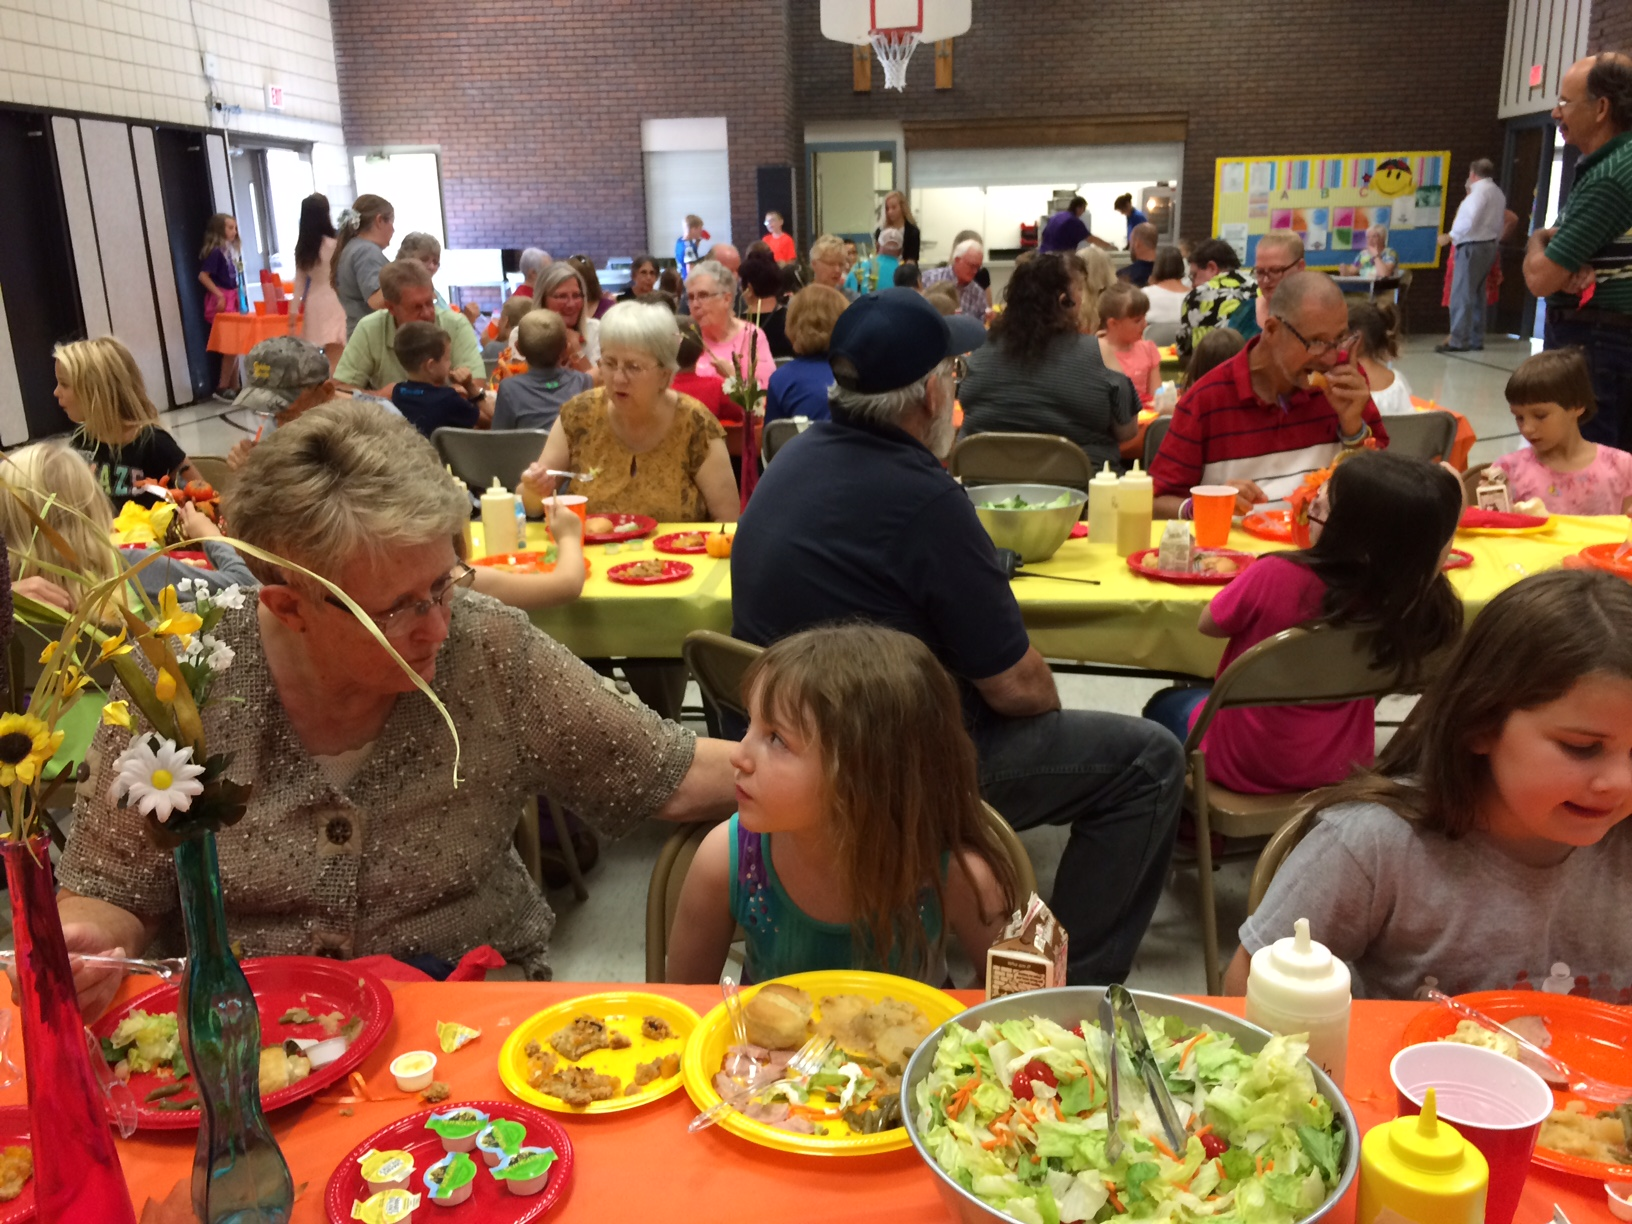 Students at Peabody Elementary School invited their grandparents to have lunch in the cafeteria with them. After lunch, the grandparents spent time in the classroom working on a special craft for Grandparents' Day, which was celebrated Sunday.